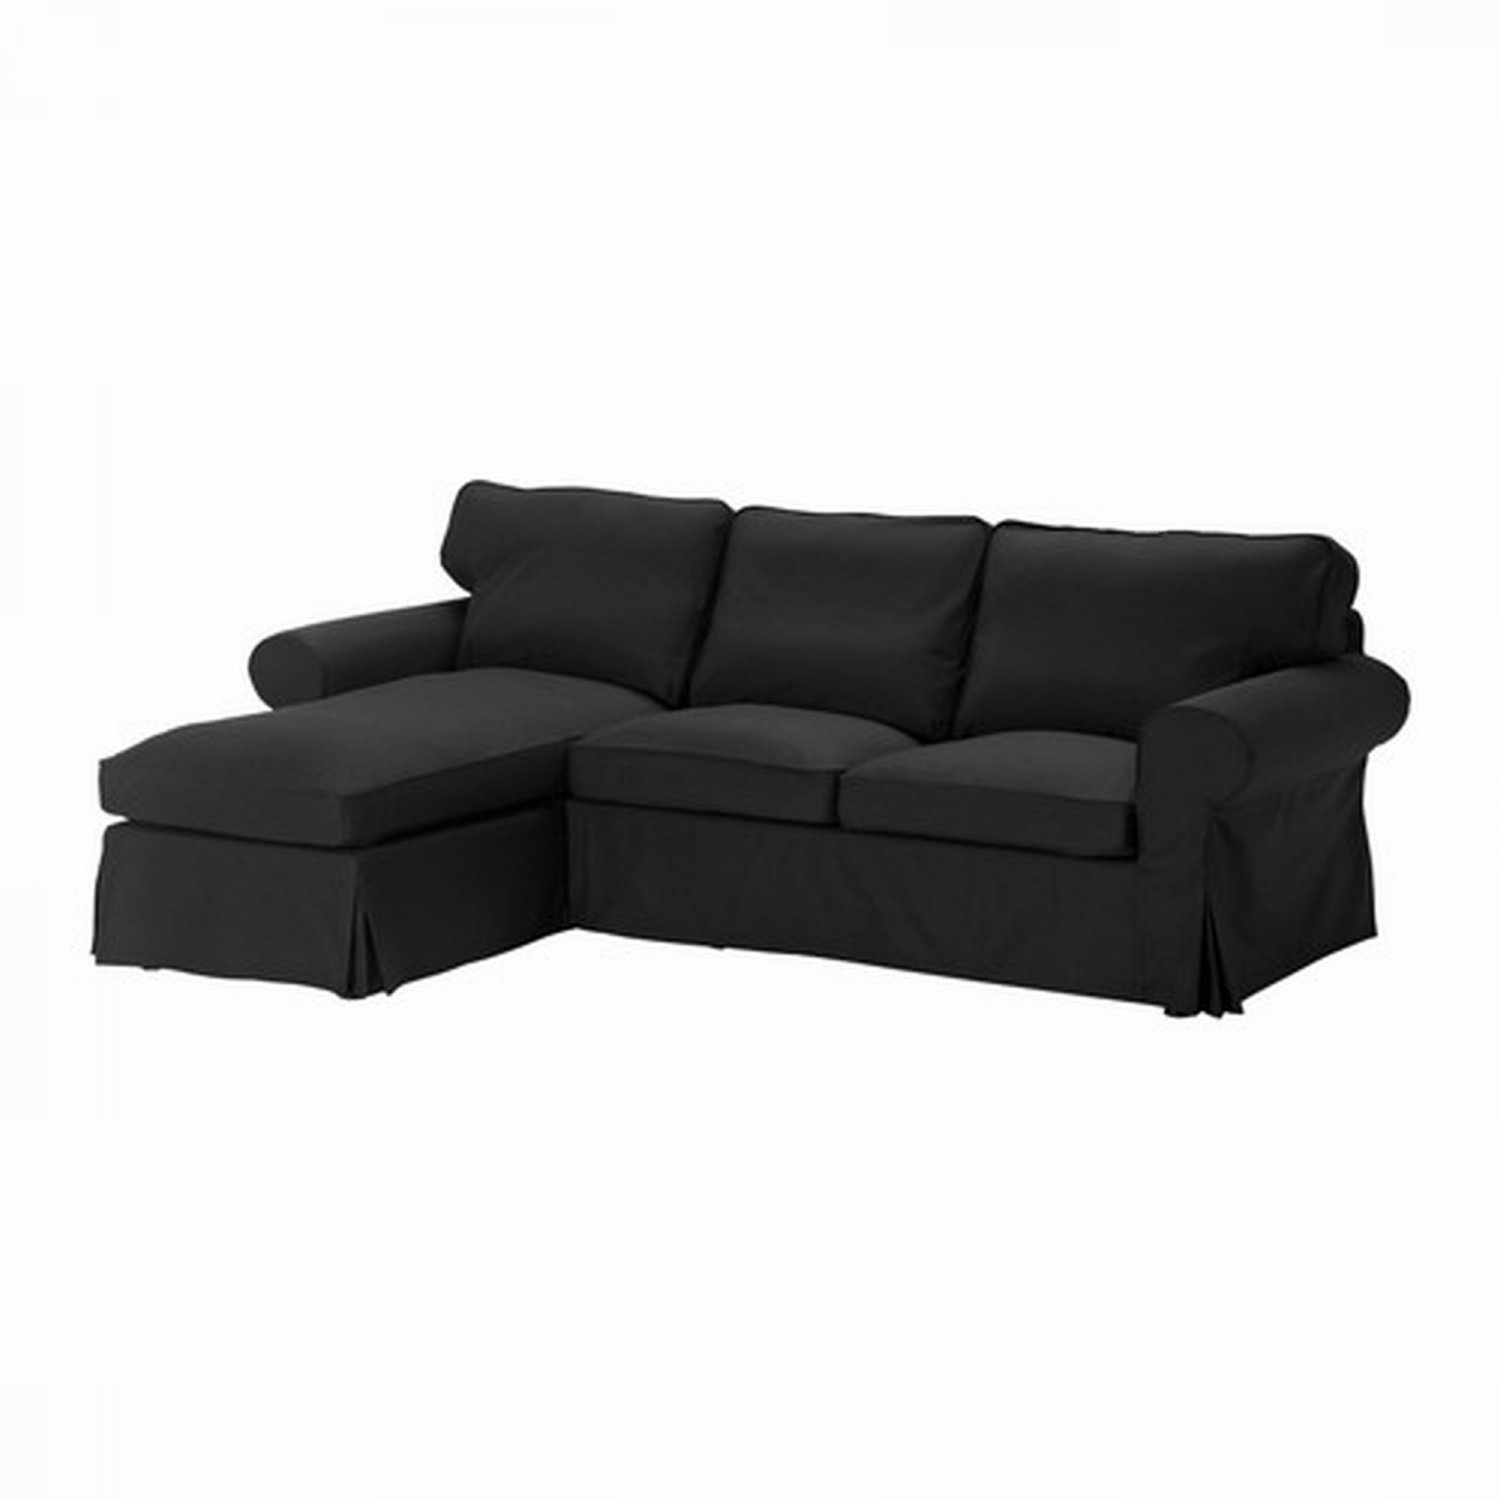 ikea ektorp 2 seat loveseat sofa with chaise cover slipcover idemo black. Black Bedroom Furniture Sets. Home Design Ideas